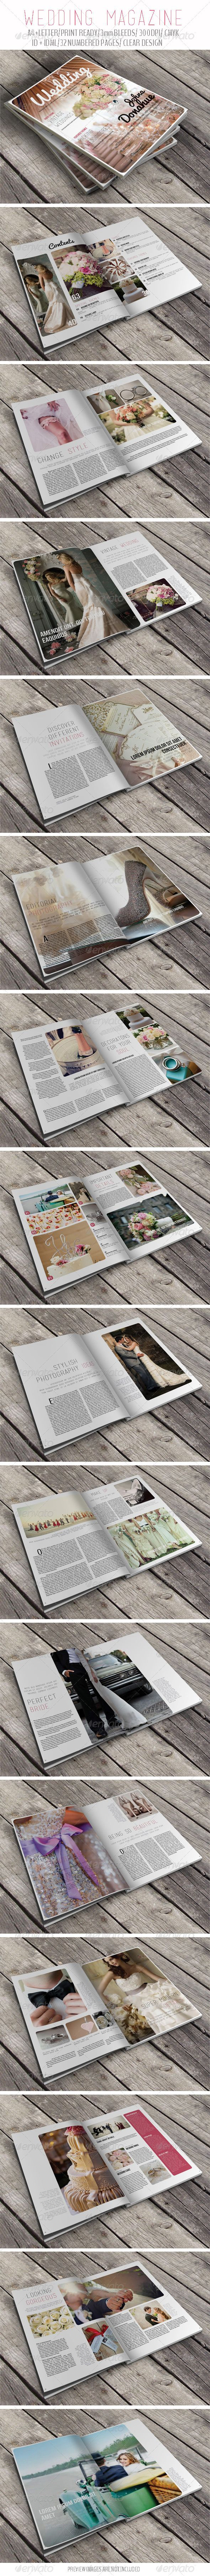 Wedding Magazine .        	 In-design CS5 + Idml CS4 or lower  	 Wedding Magazine template is beautiful, clean and elegant designed magazine that provides your